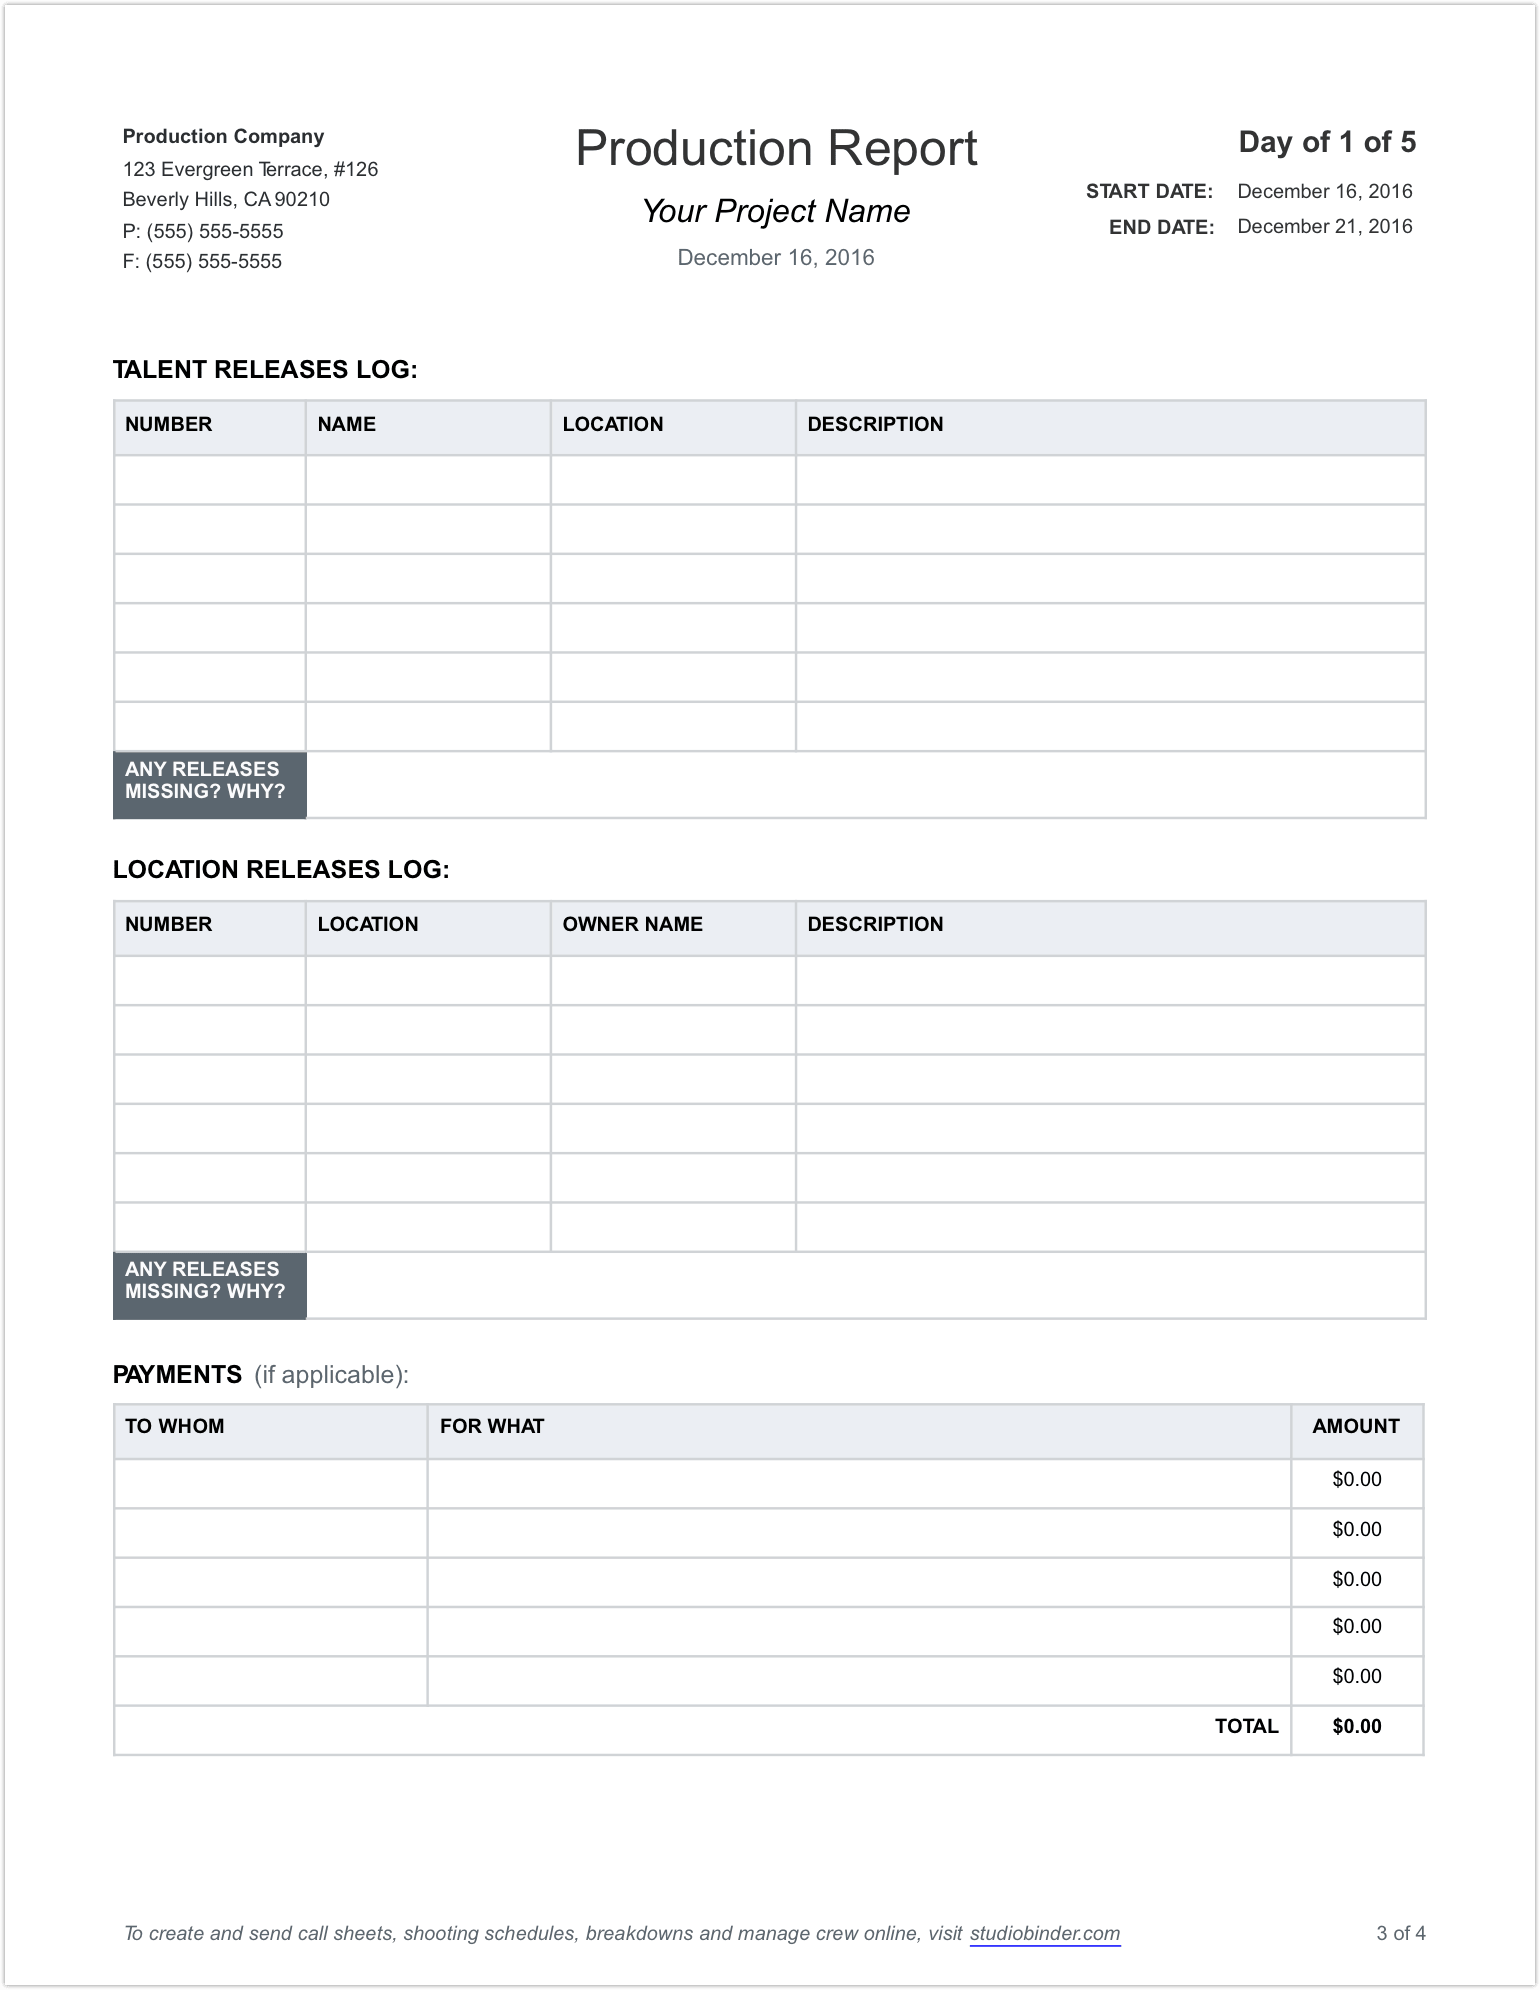 Download Production Report Template Excel Within Production Report Template Excel In Excel